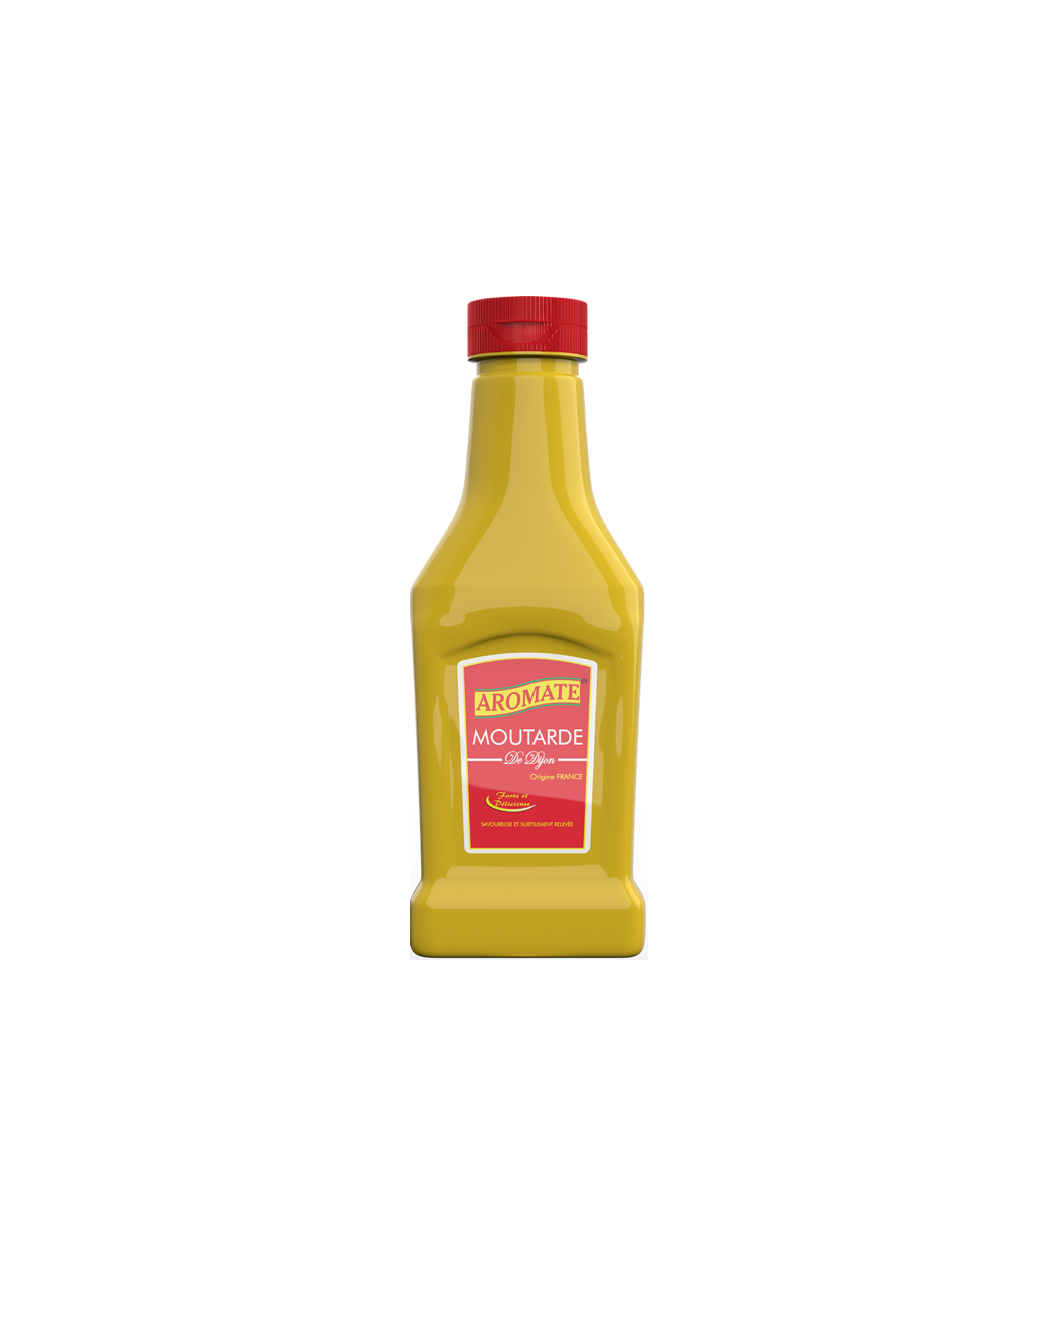 AROMATE_Moutarde 350ml Squeeze